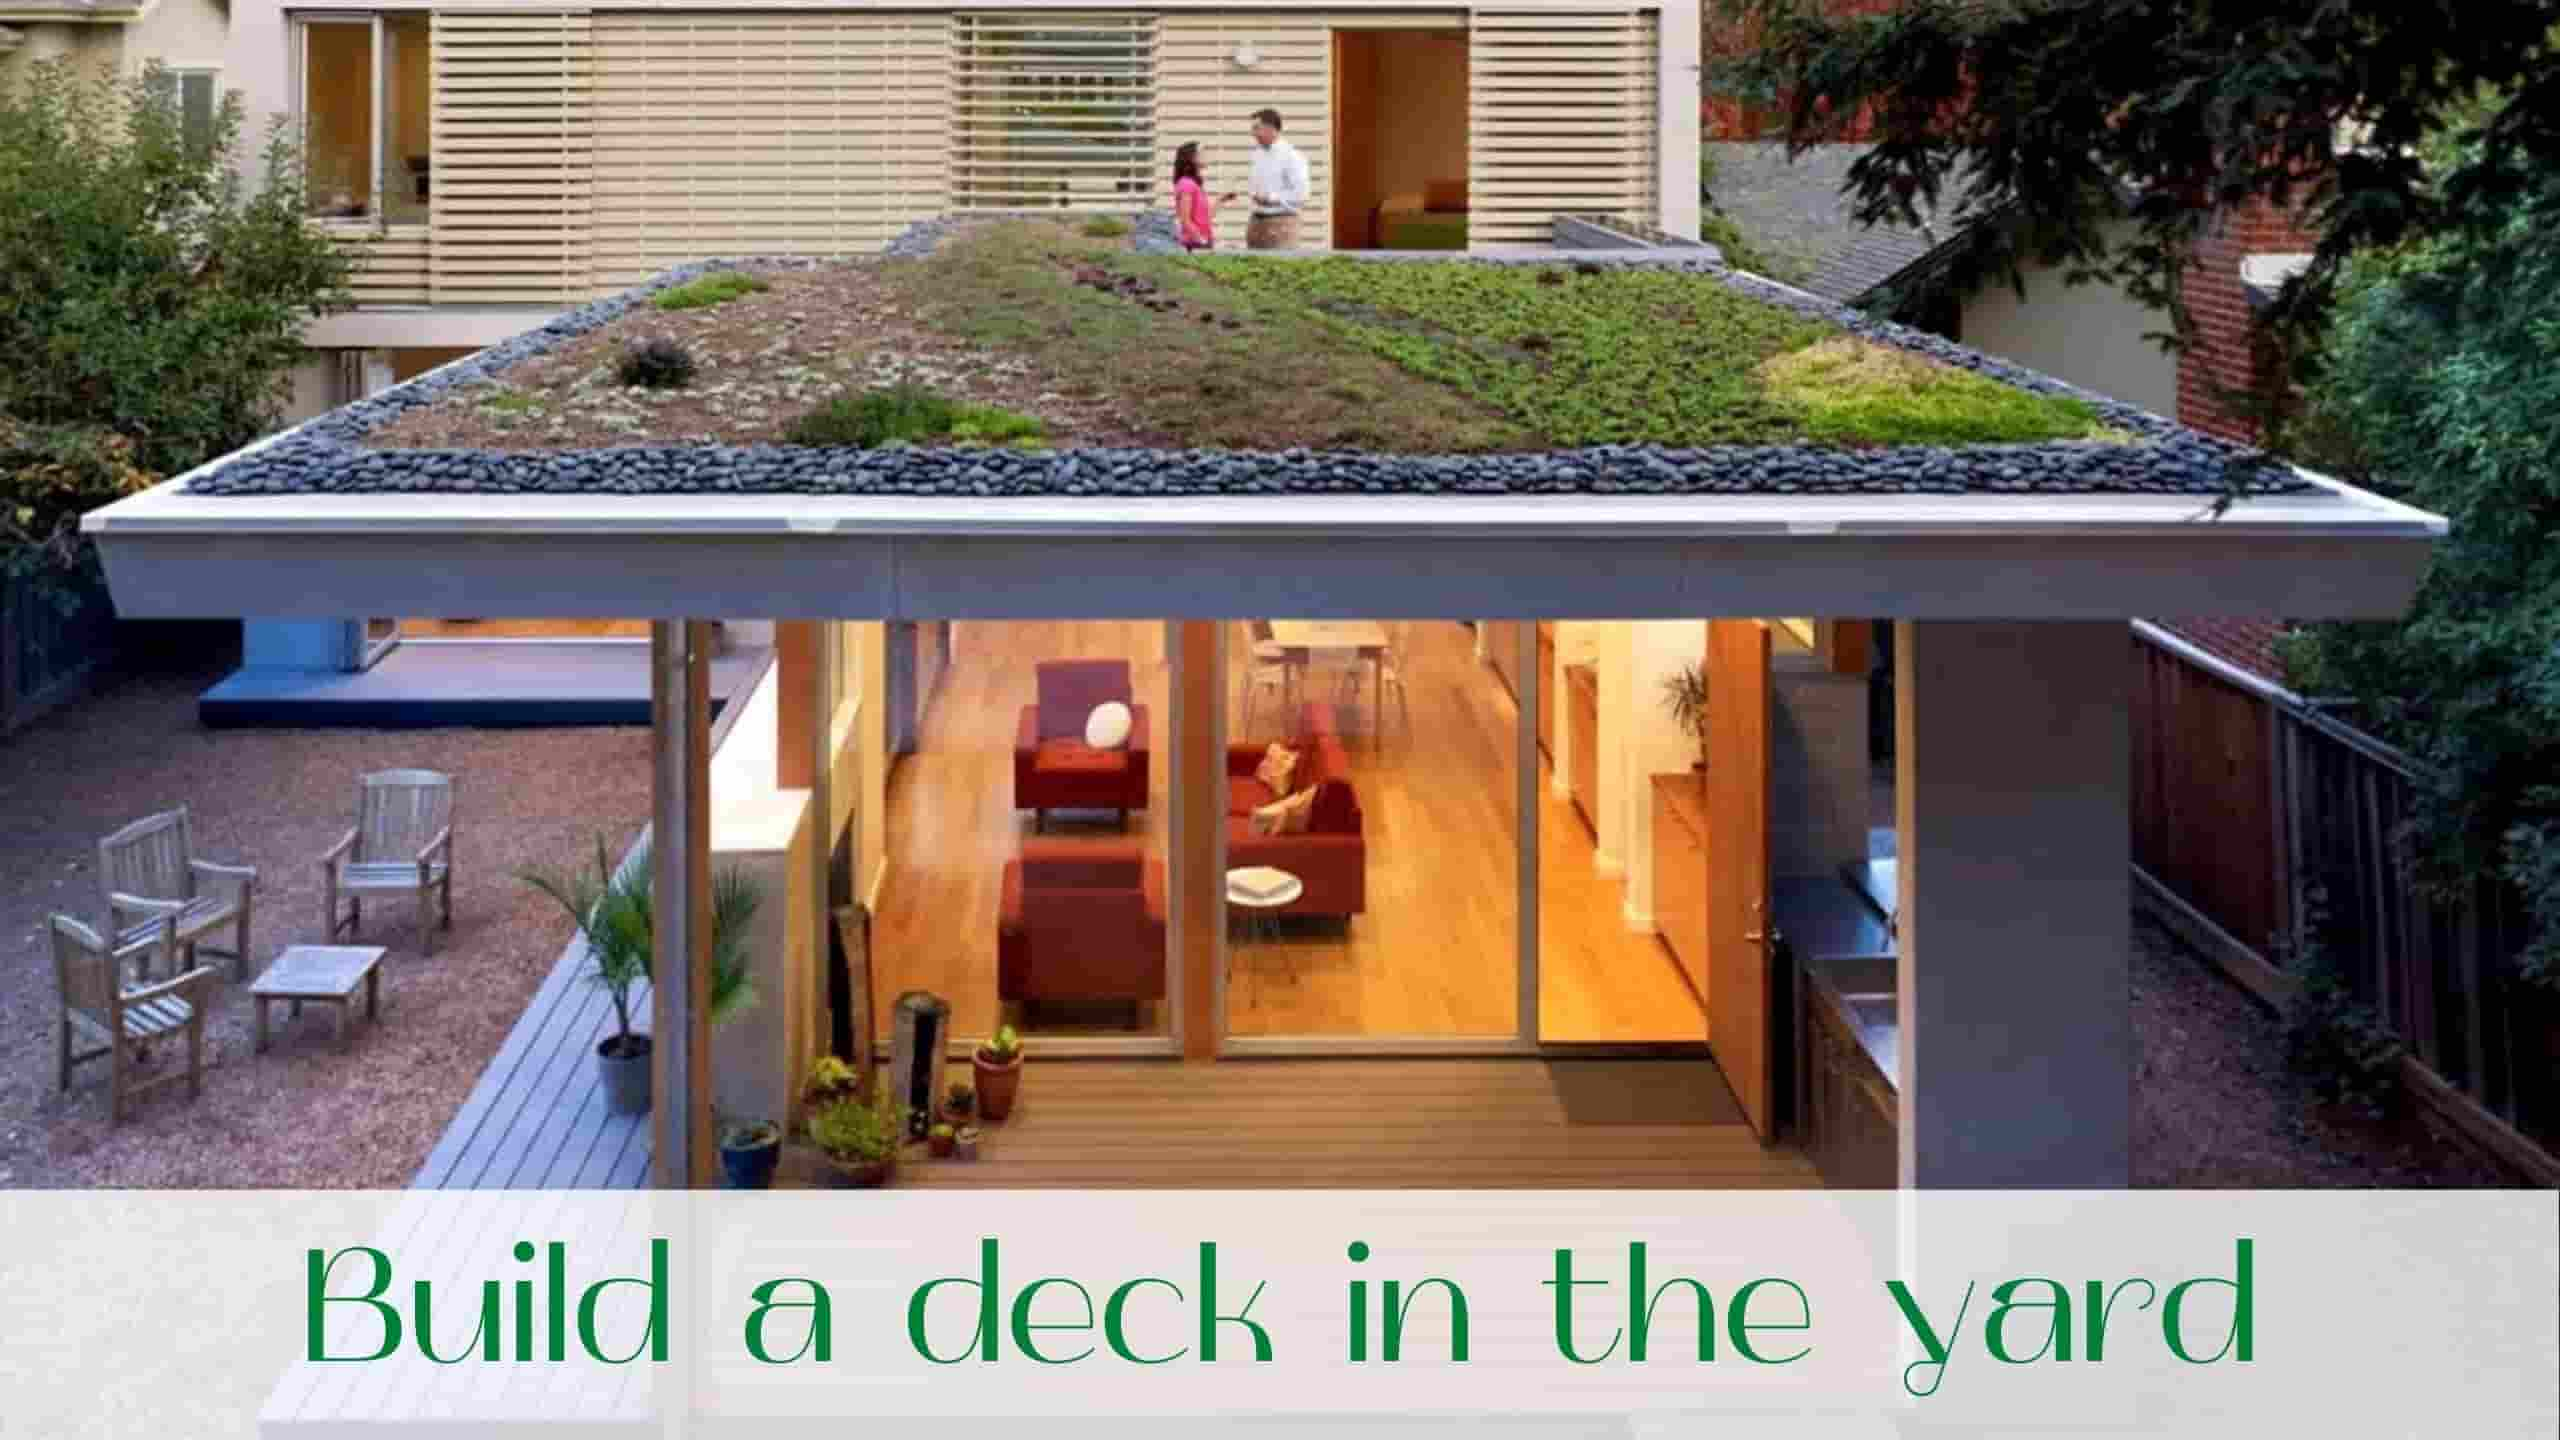 image-build-a-deck-in-the-yard